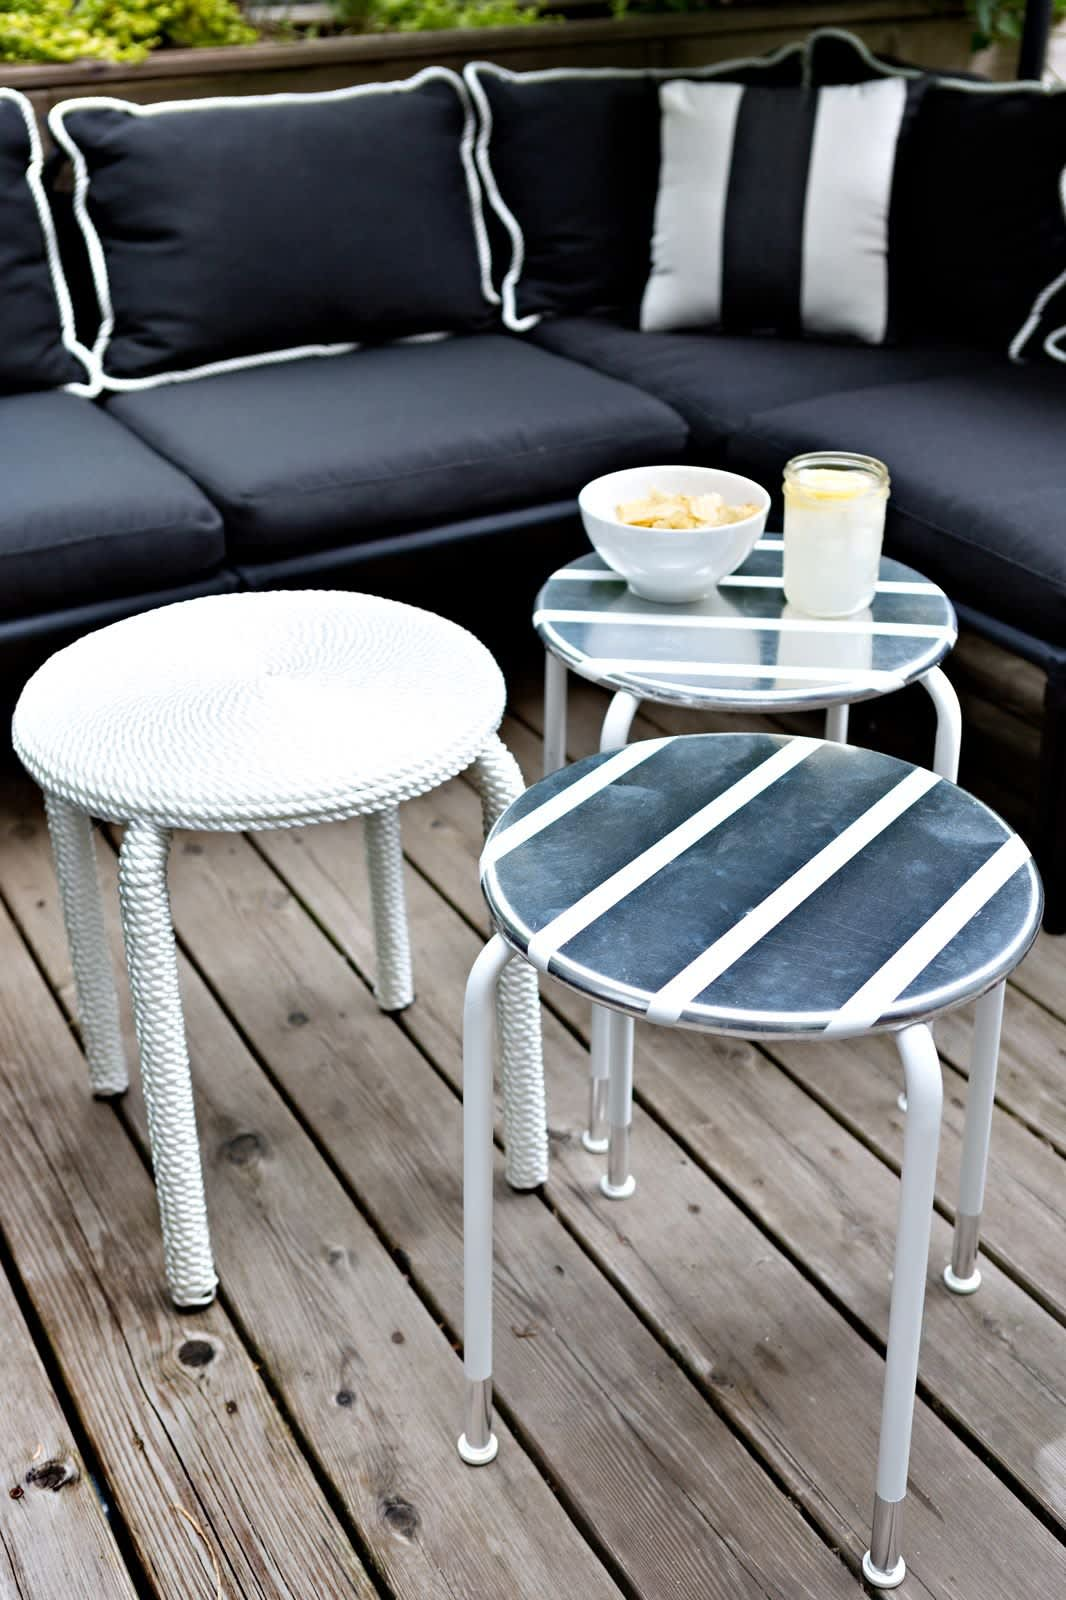 Easy affordable surprisingly chic ikea hacks for your patio or balcony